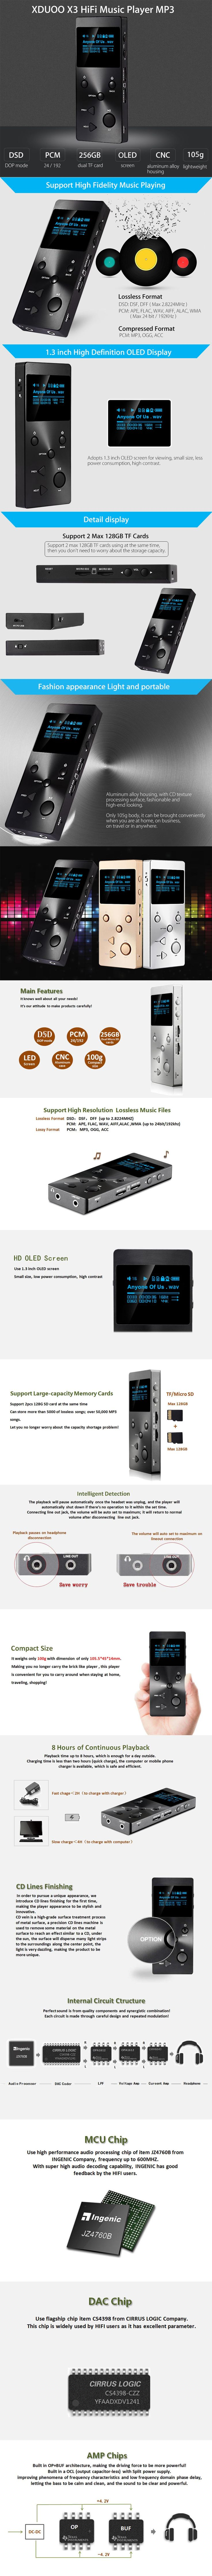 The xDuoo X3 Portable Hi-Fi Music Player is the perfect device for music enthusiast as it will support audio format, 128GB Micro SD card and DSD format.